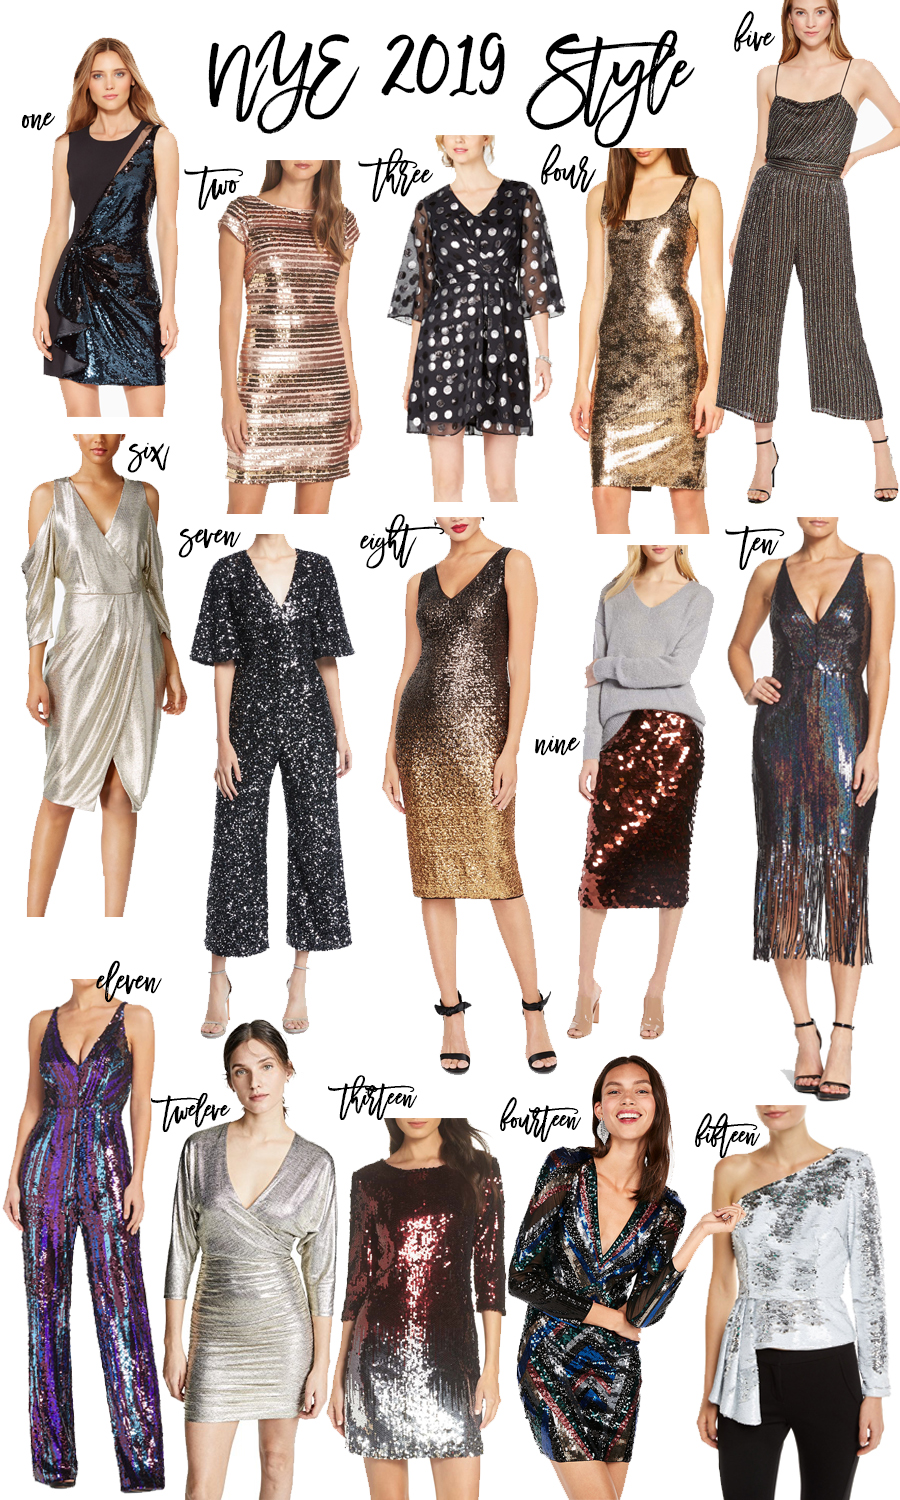 15 Fabulous NYE Outfit Ideas to Help You Ring in the New Year in Style | Have Need Want #NYEDress #NYEOutfits #NYEStyle #NewYearEve2019